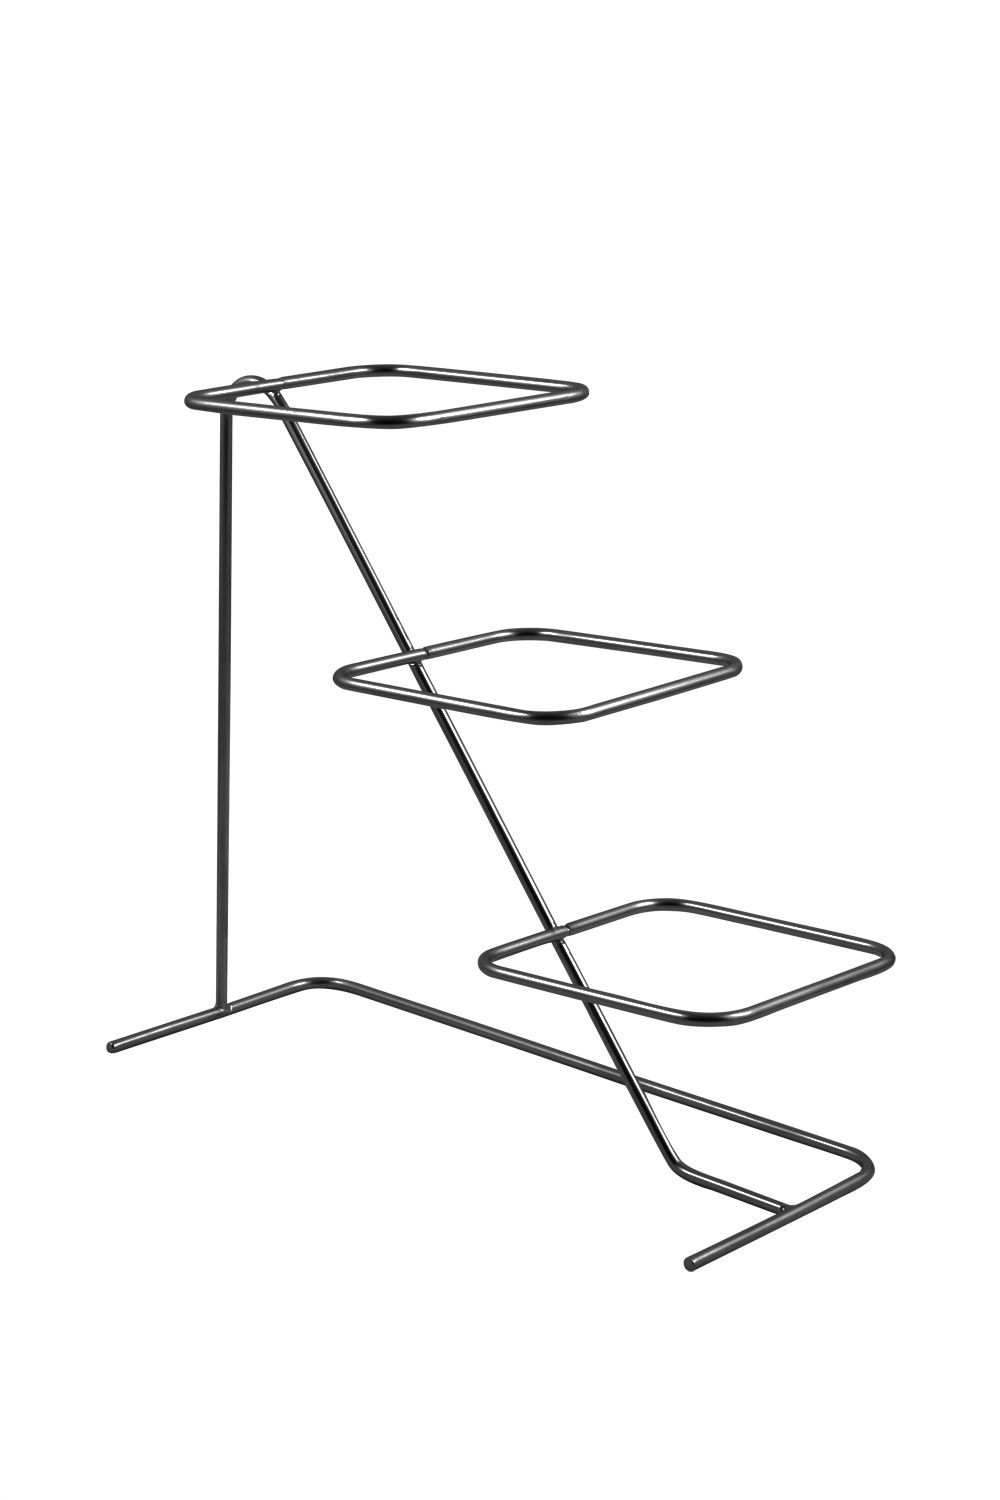 Bon Chef 7011HS High Side Condiment Stand for (3) 9110, Sandstone